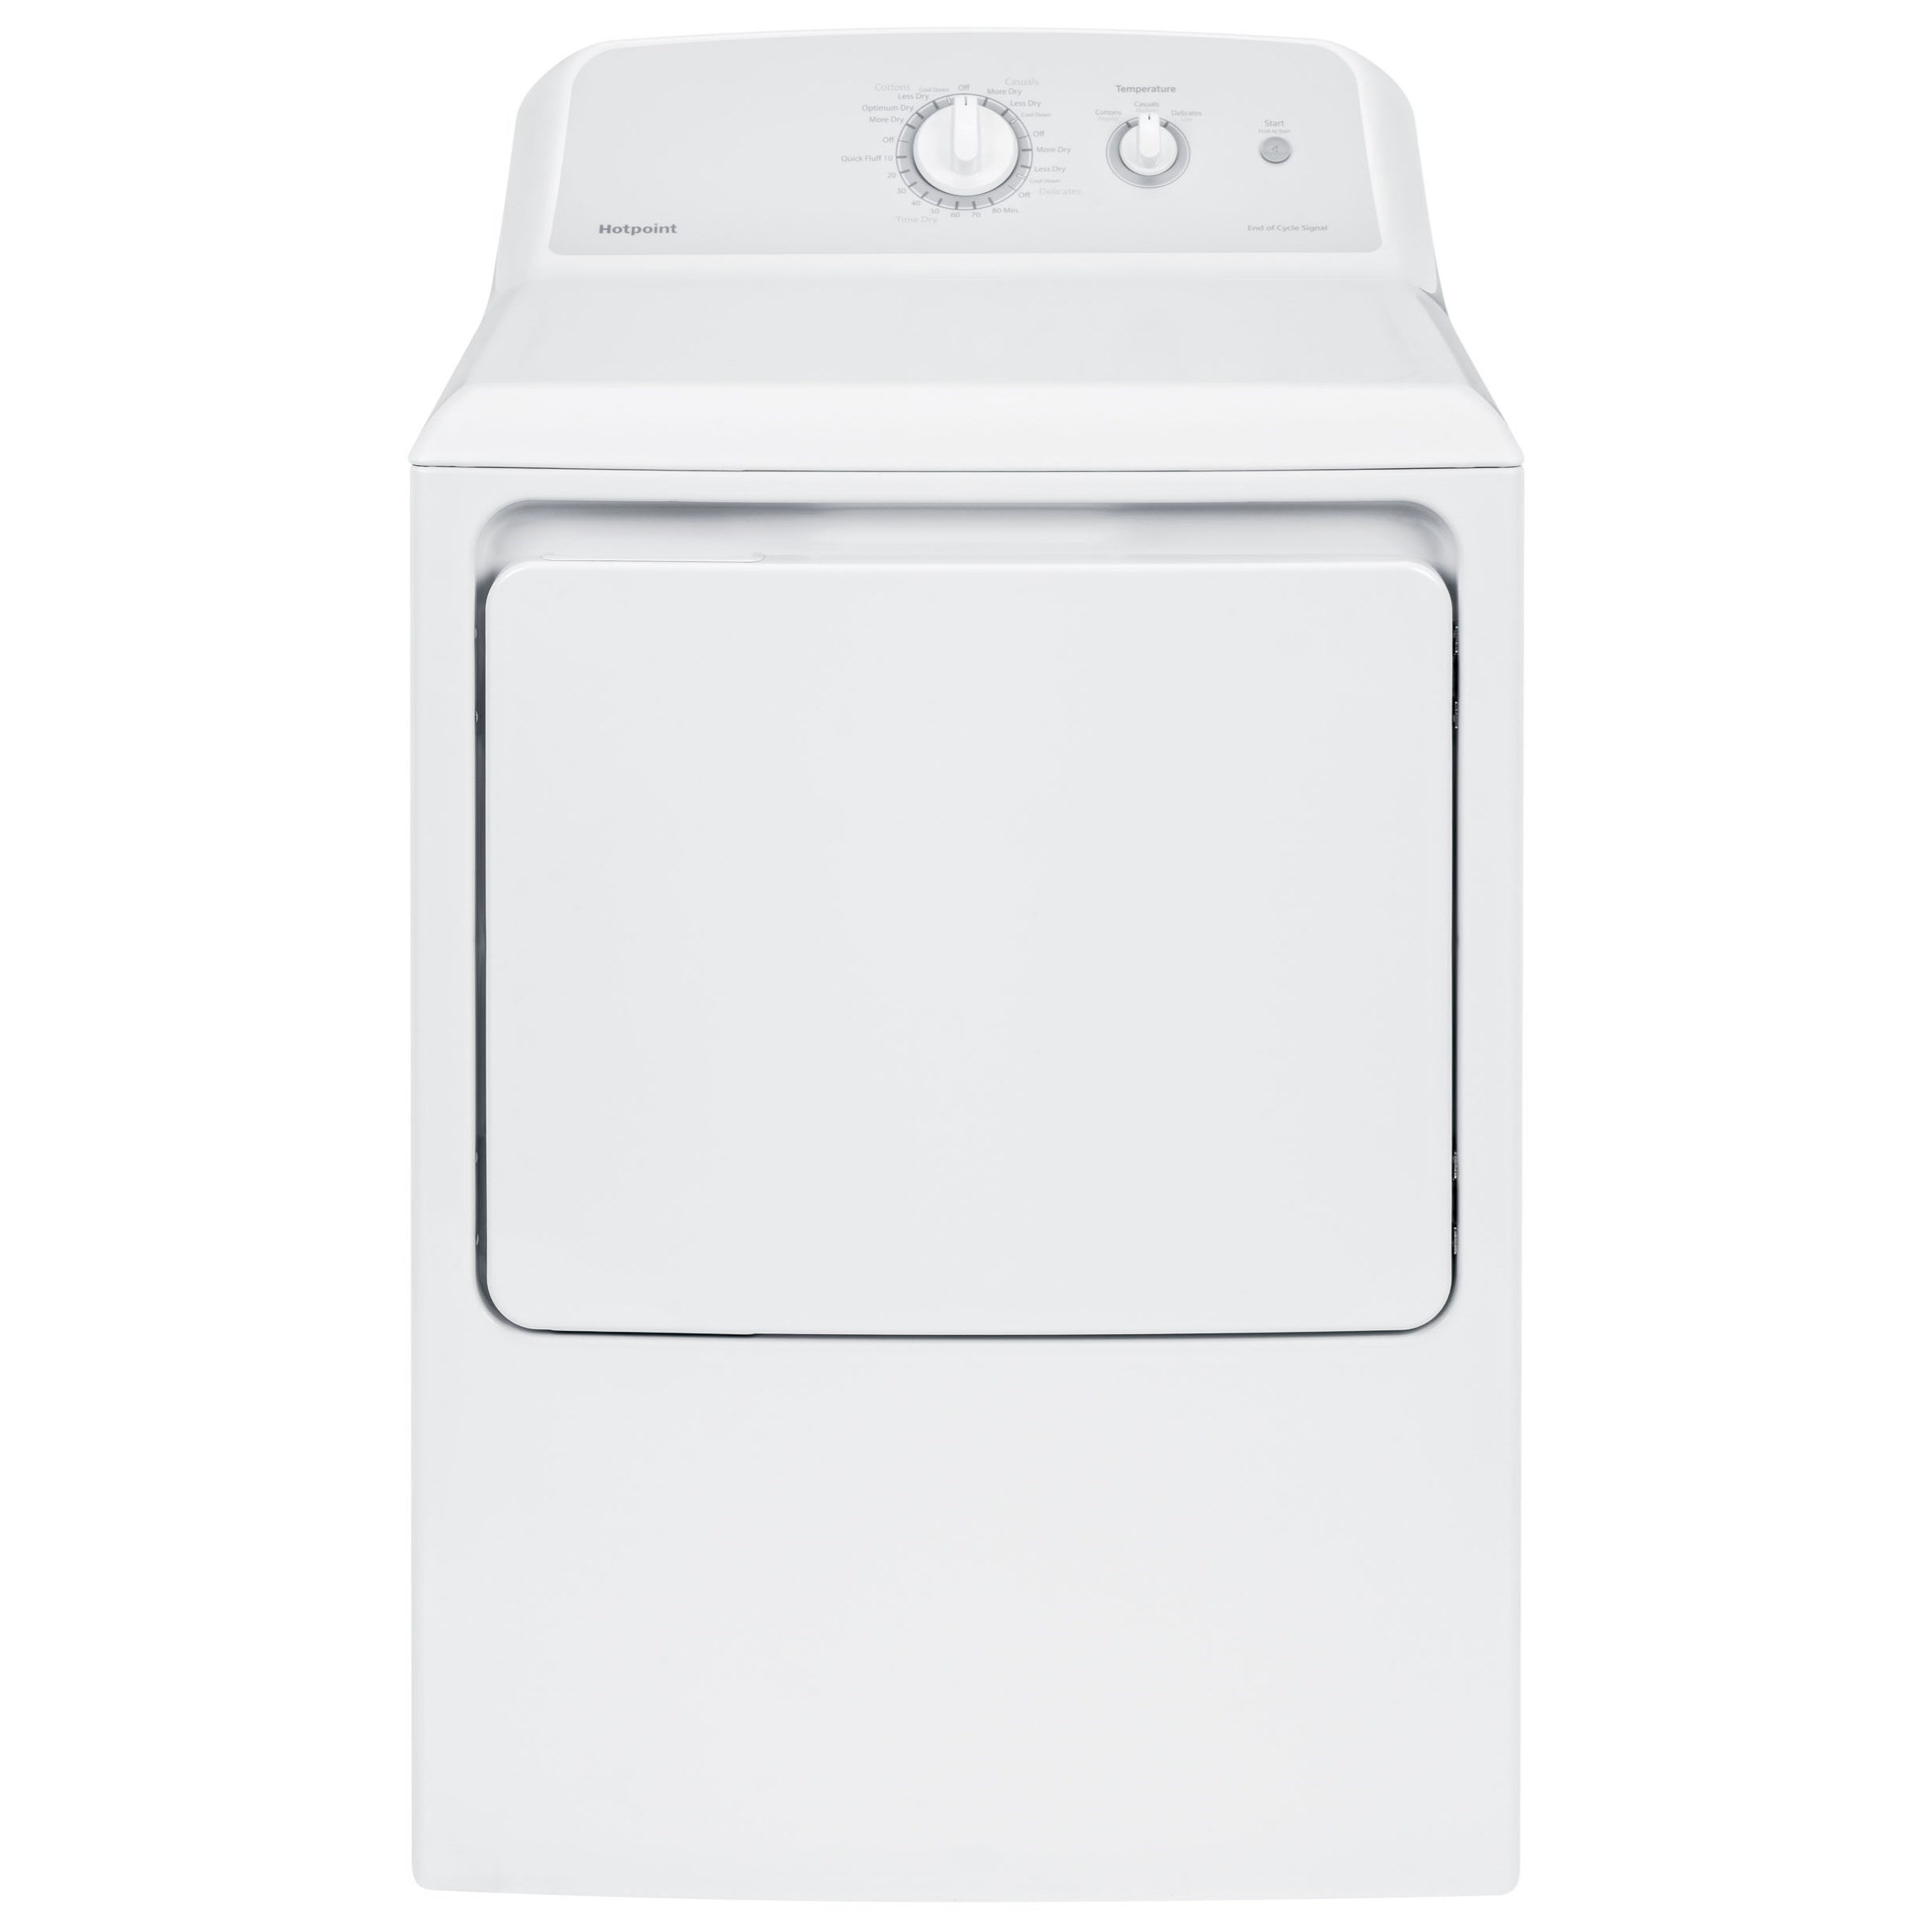 Hotpoint Dryers 6.2 Cu.Ft. Aluminized Alloy Electric Dryer - Item Number: HTX24EASKWS